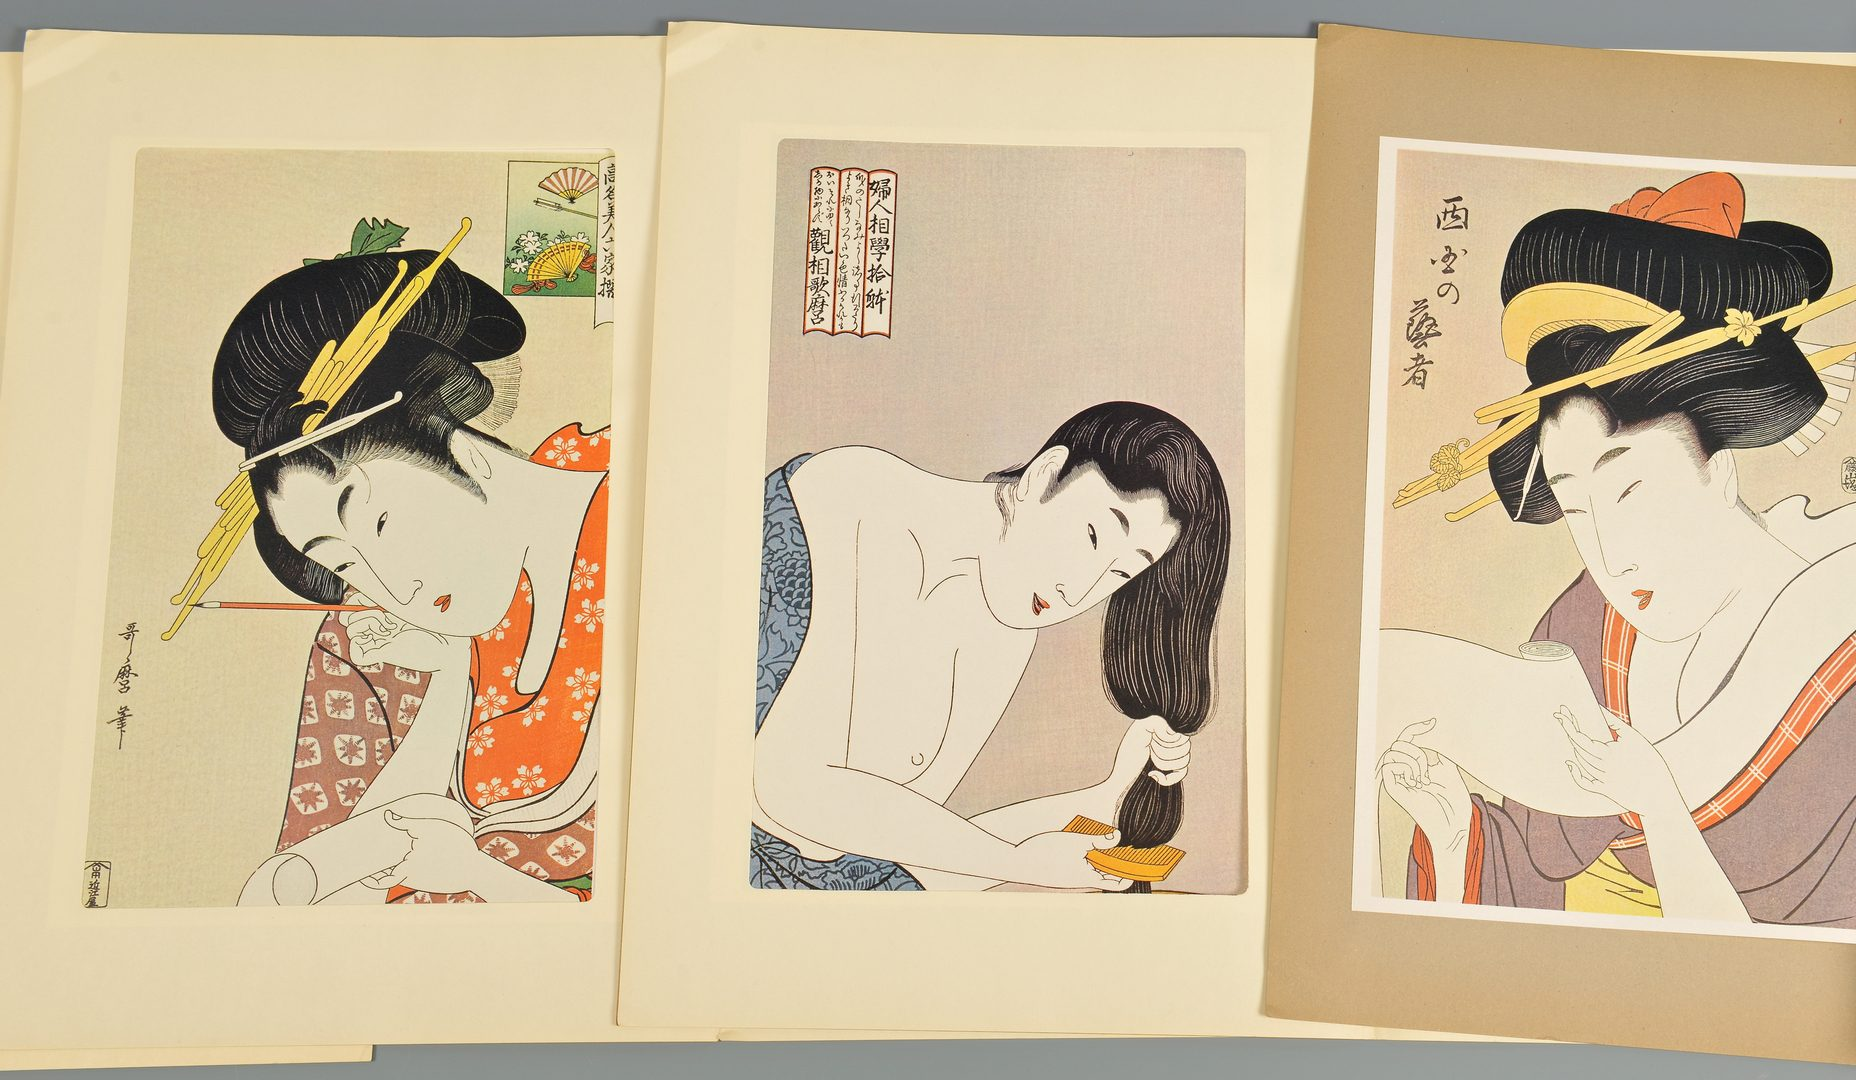 Lot 123: Utamaro, Ukiyo-e Hanga 24 Masterpieces & Others